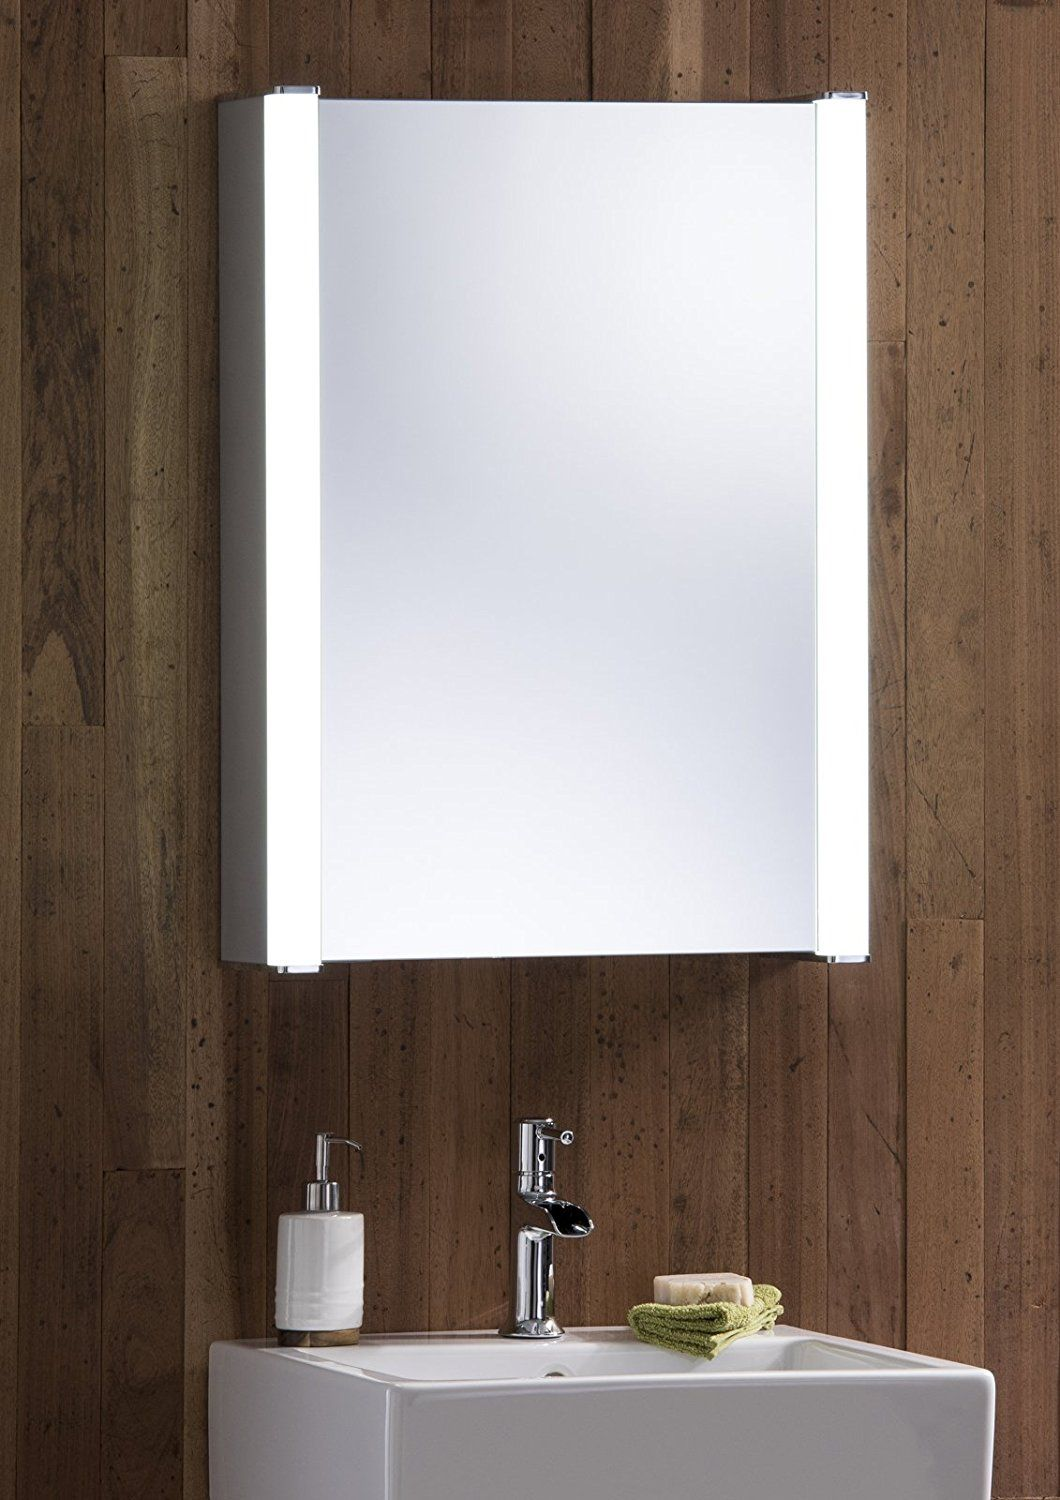 Neue Design Led Illuminated Bathroom Mirror Cabinet With Wire Free